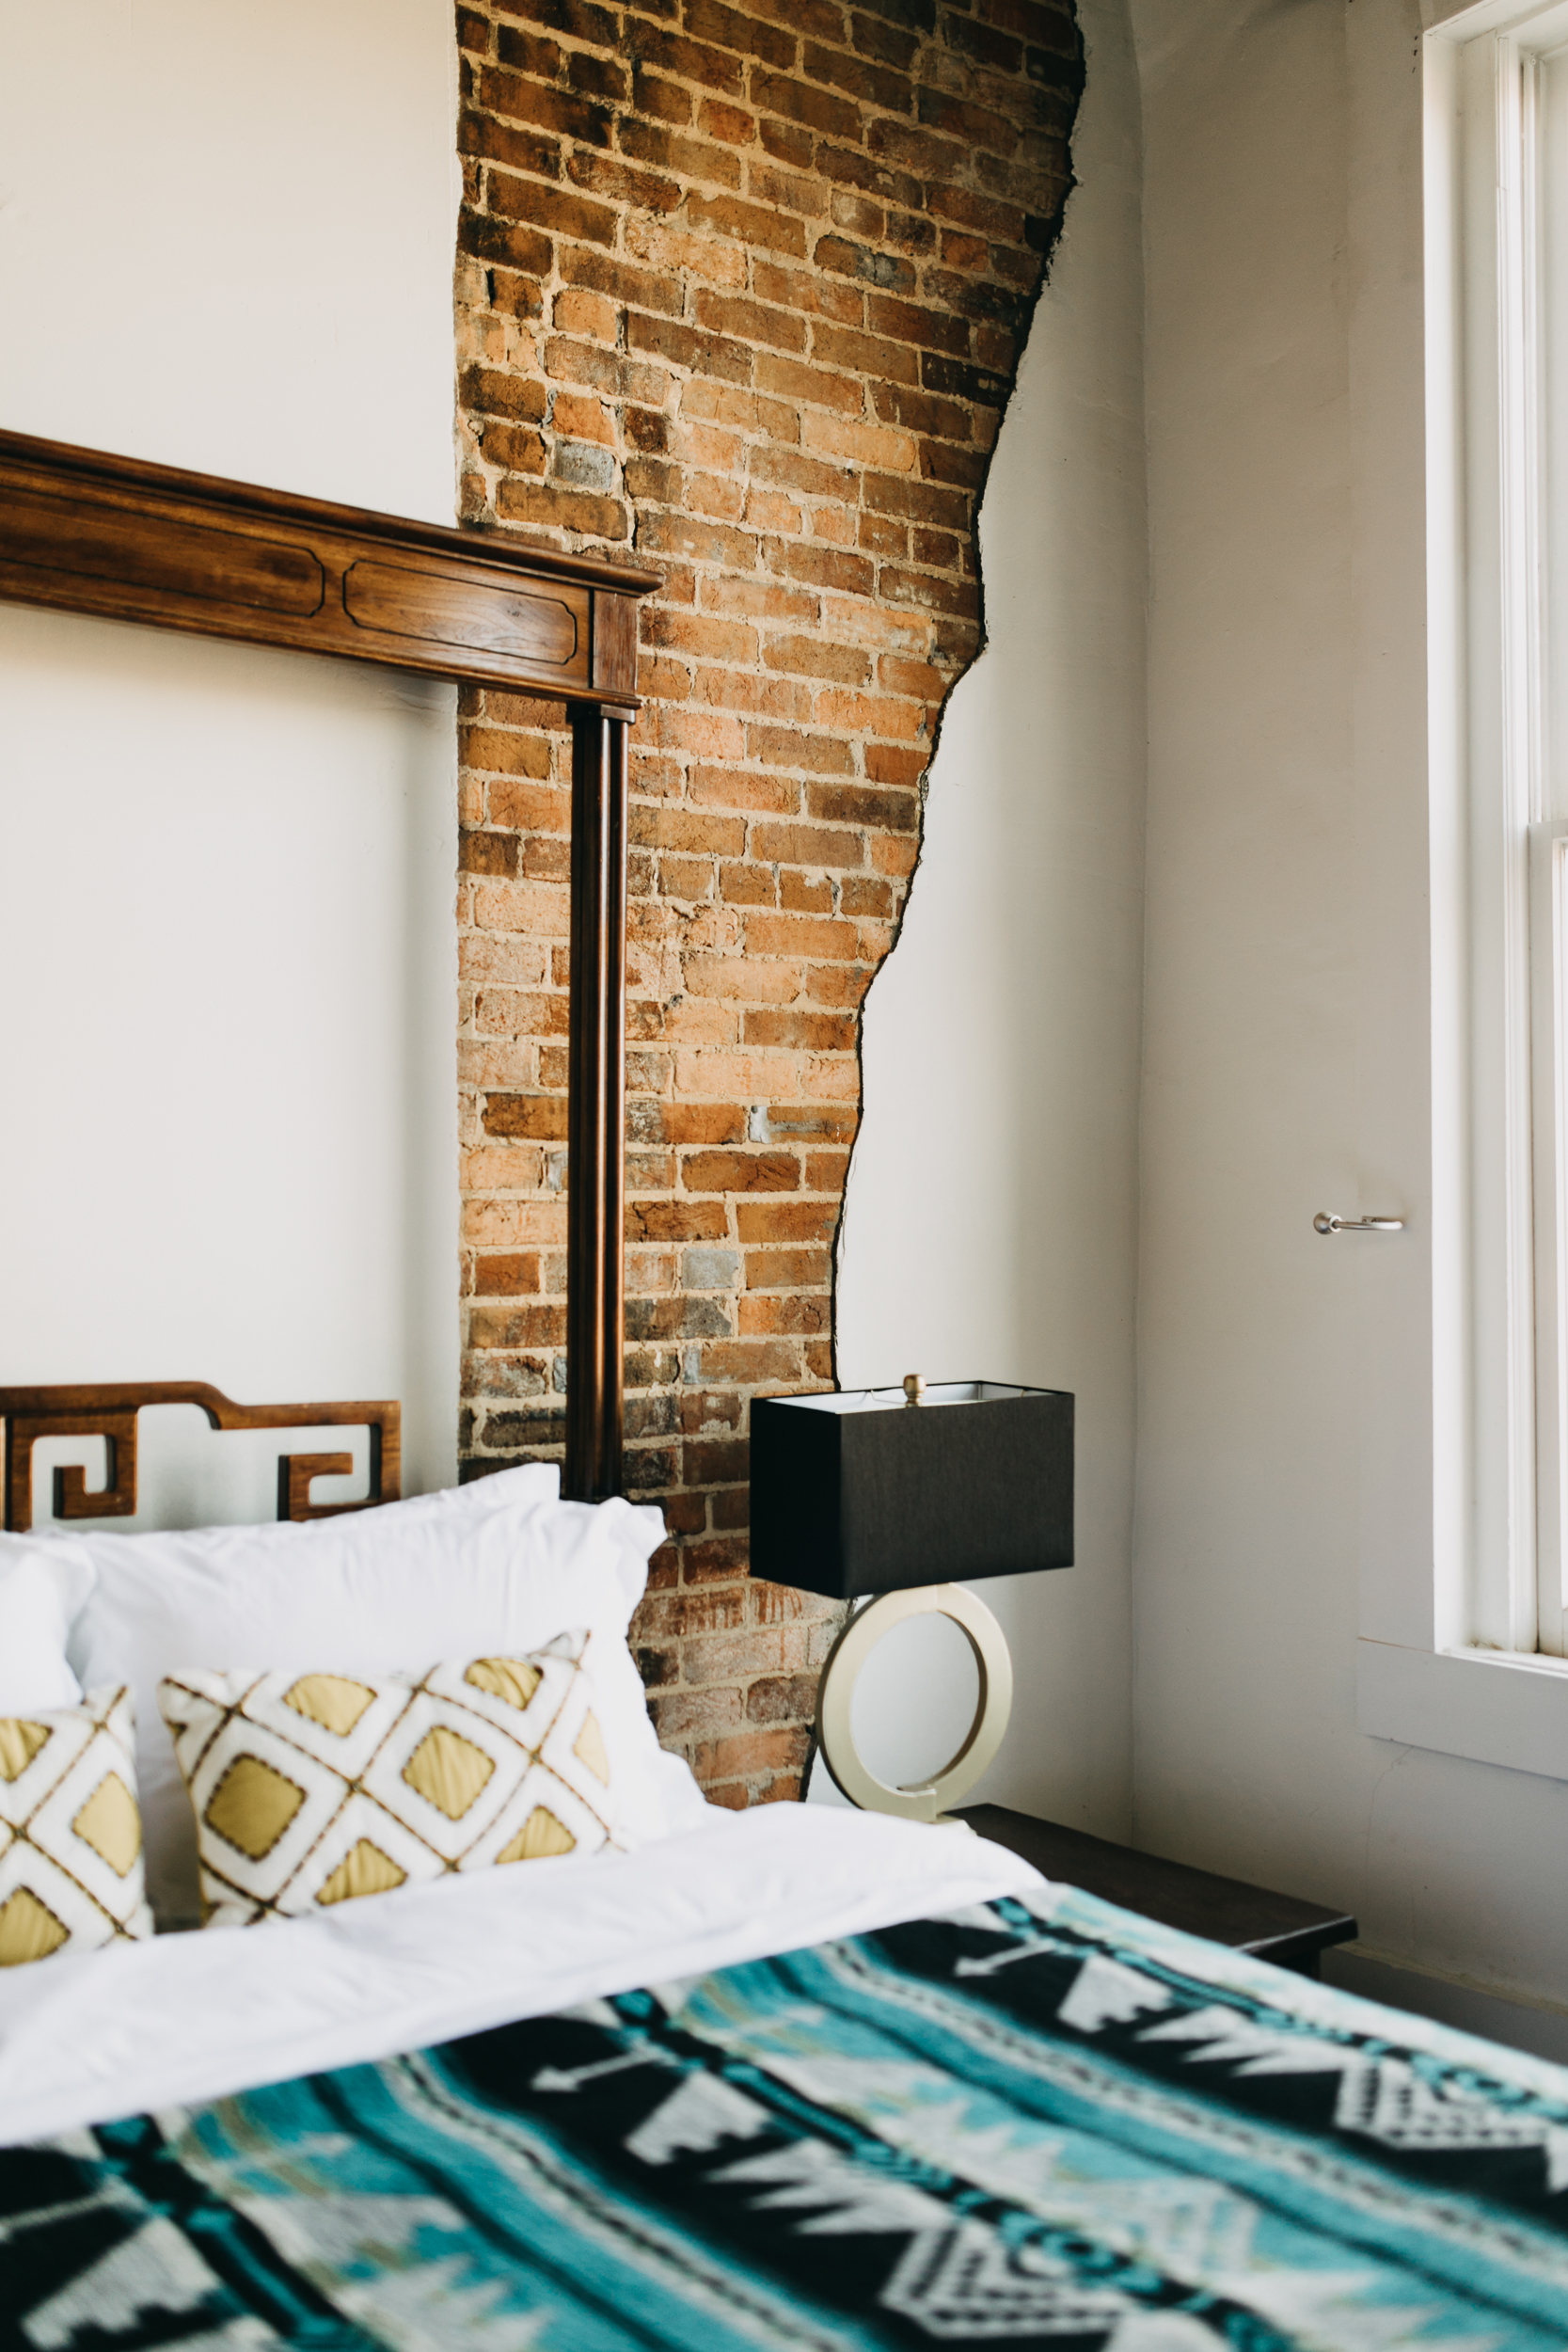 Springfield mo airbnb, Exposed brick wall in master suite